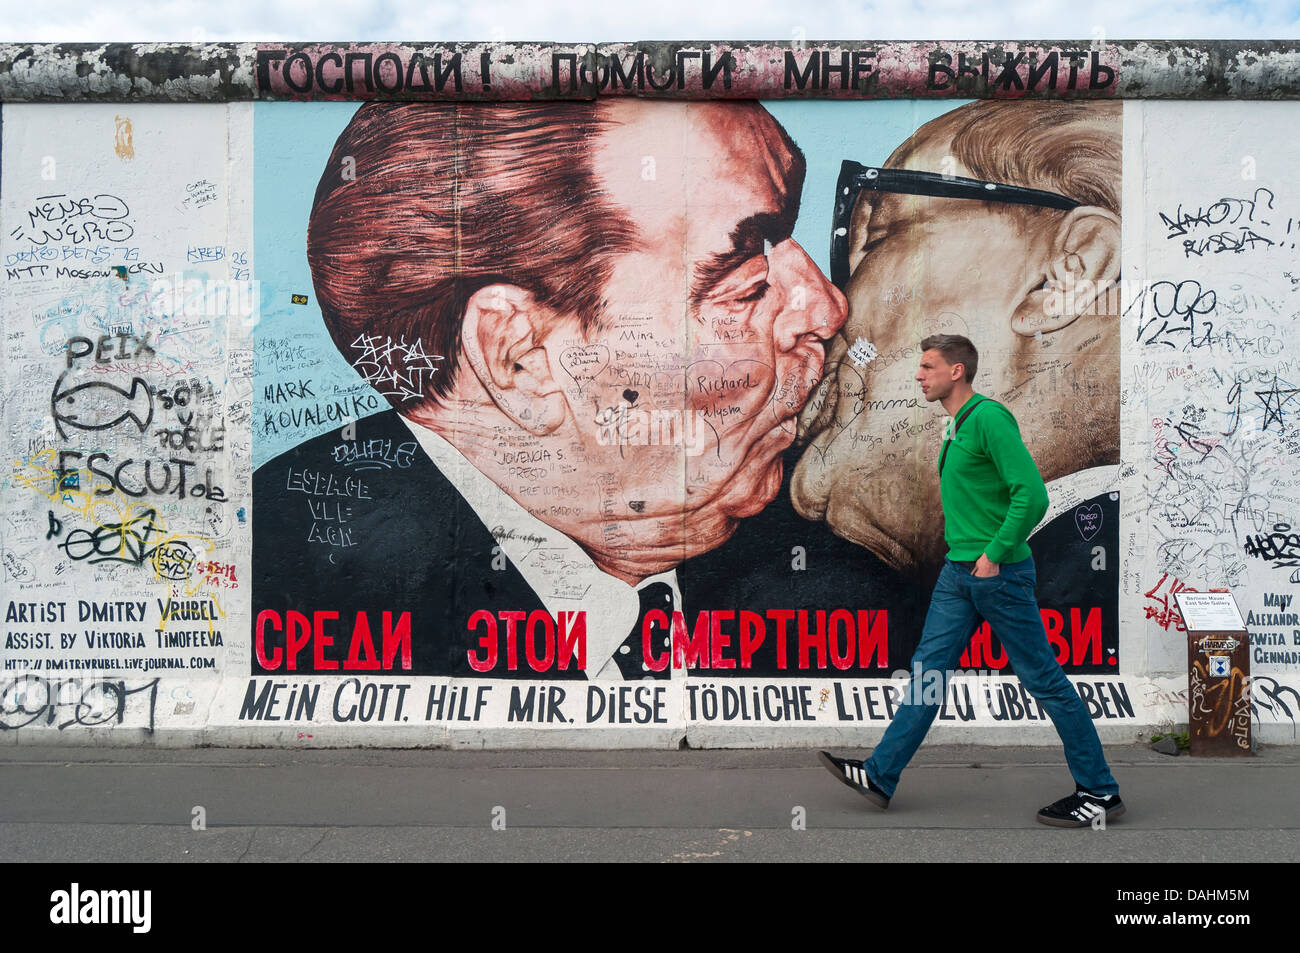 Fraternal Kiss (My God, Help Me to Survive This Deadly Love)  by Dimitri Vrubel, East Side Gallery, Berlin Wall, Stock Photo